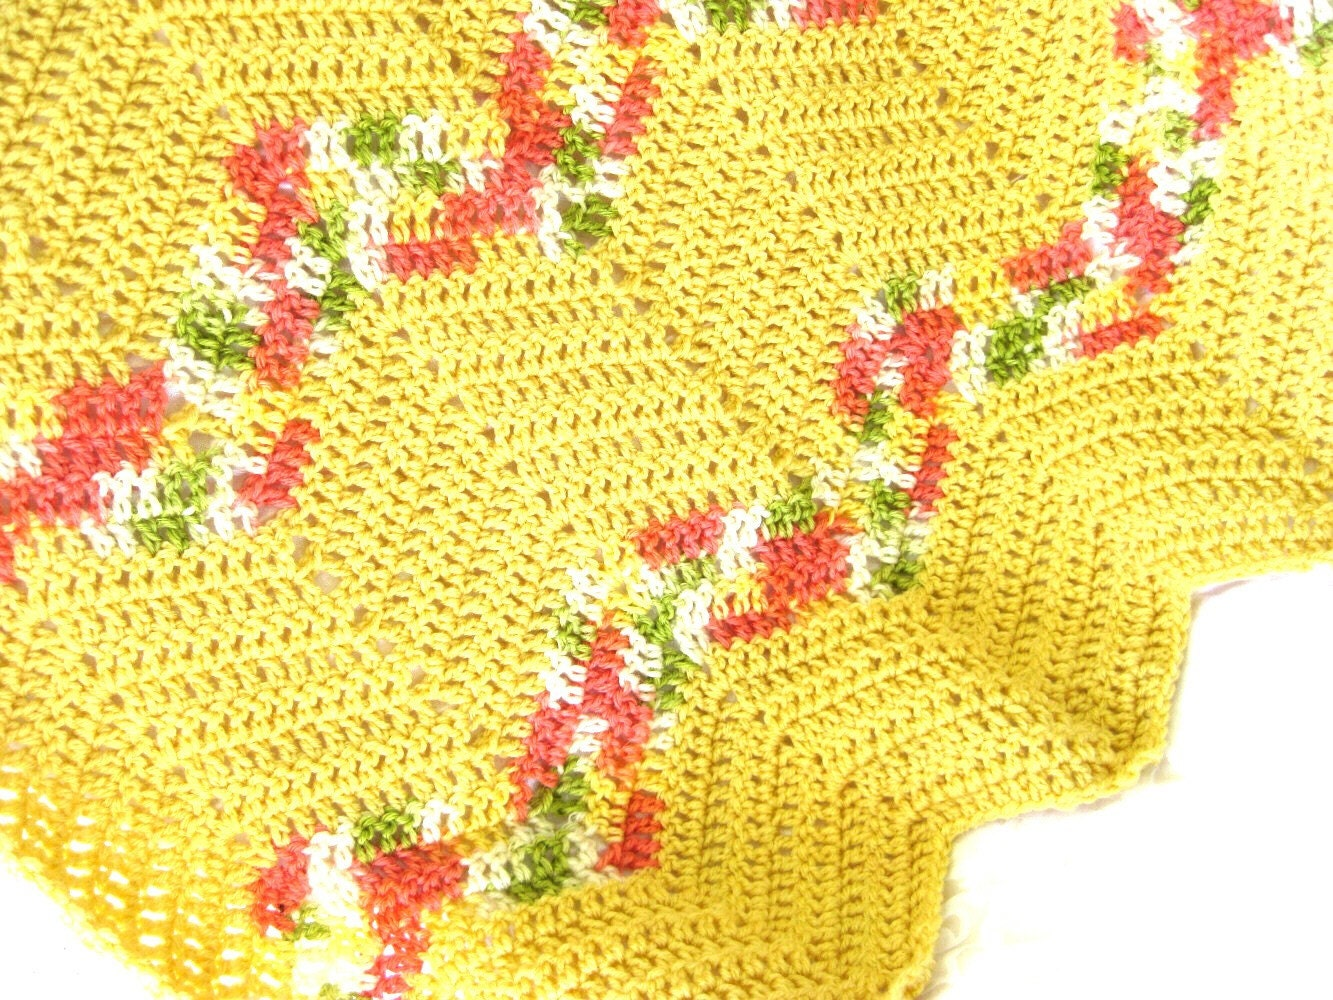 CROCHET RIPPLE AFGHAN PATTERNS - Browse Patterns